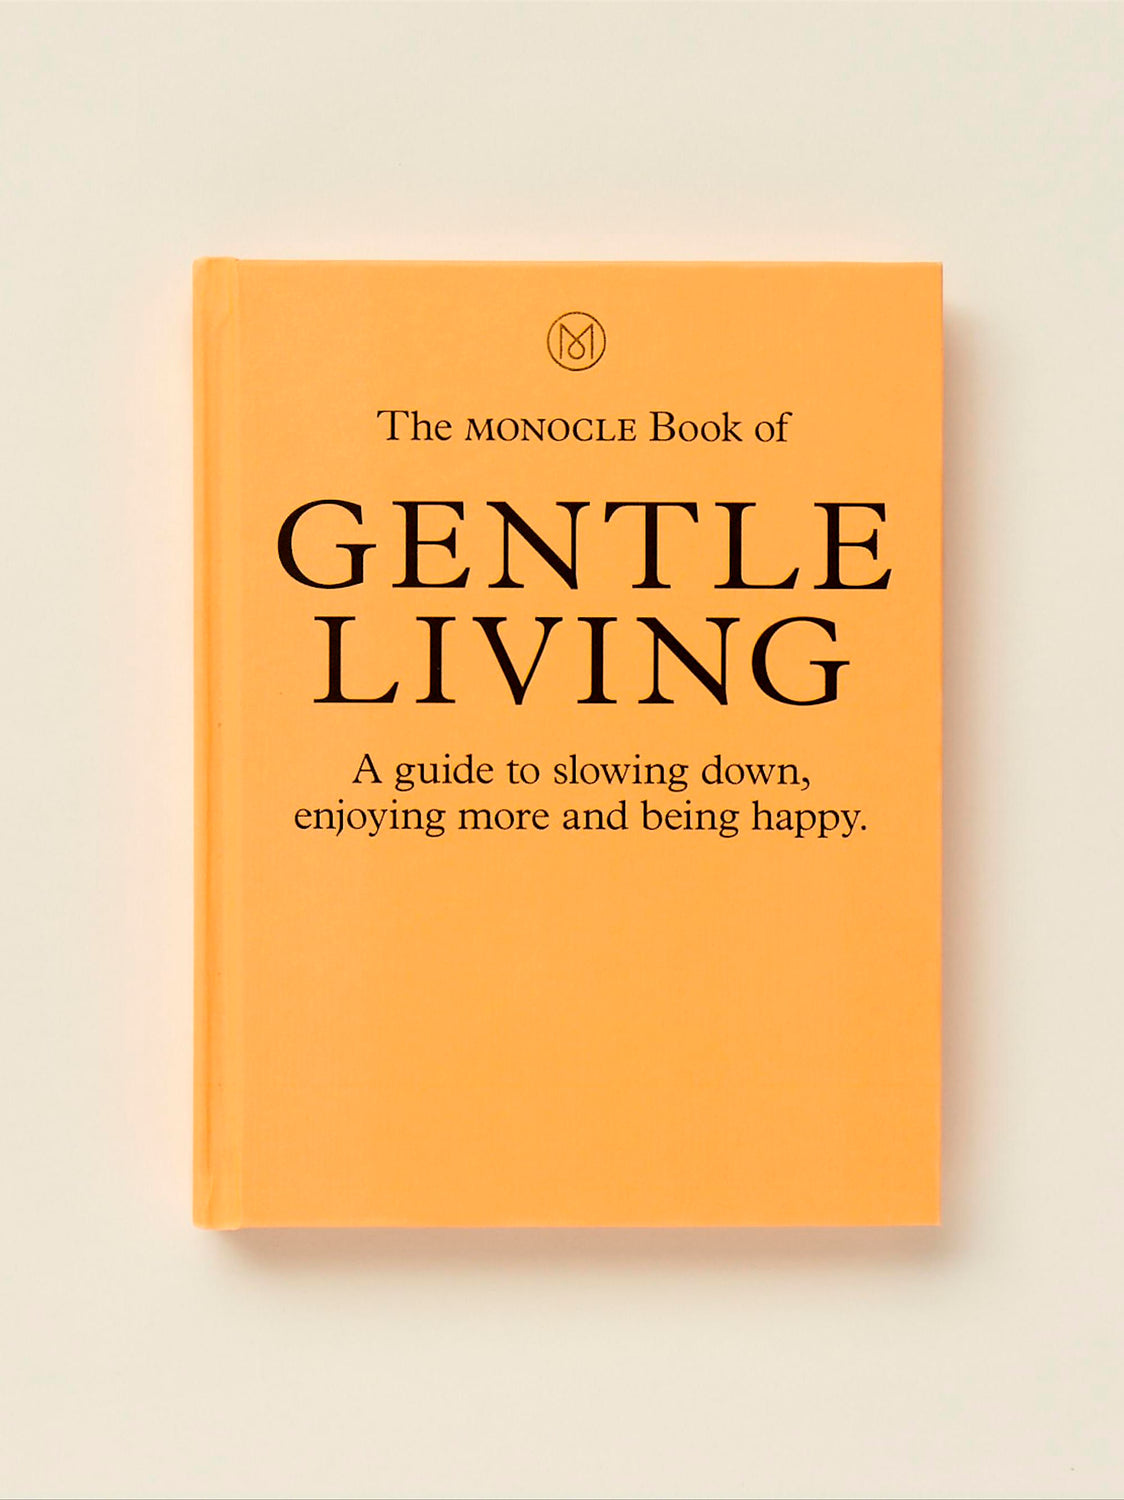 The Monocle Book of Gentle Living. Compendium Design Store, Fremantle. AfterPay, ZipPay accepted.